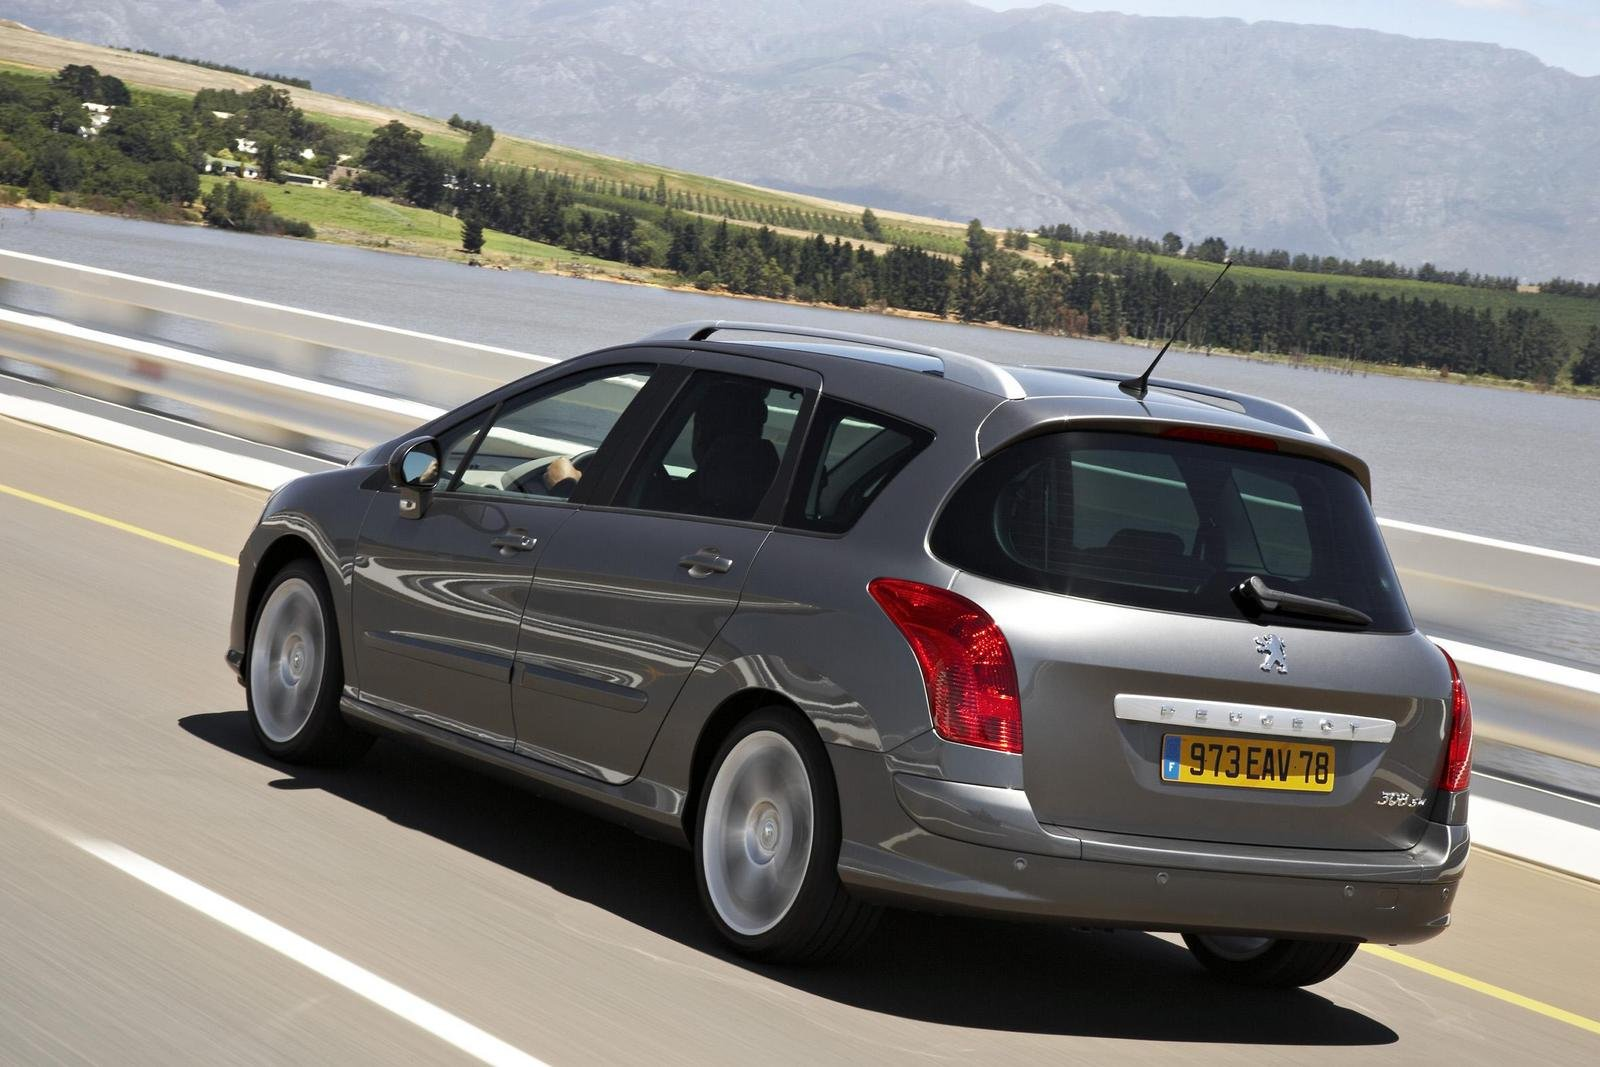 2008 peugeot 308 sw picture 233143 car review top speed. Black Bedroom Furniture Sets. Home Design Ideas